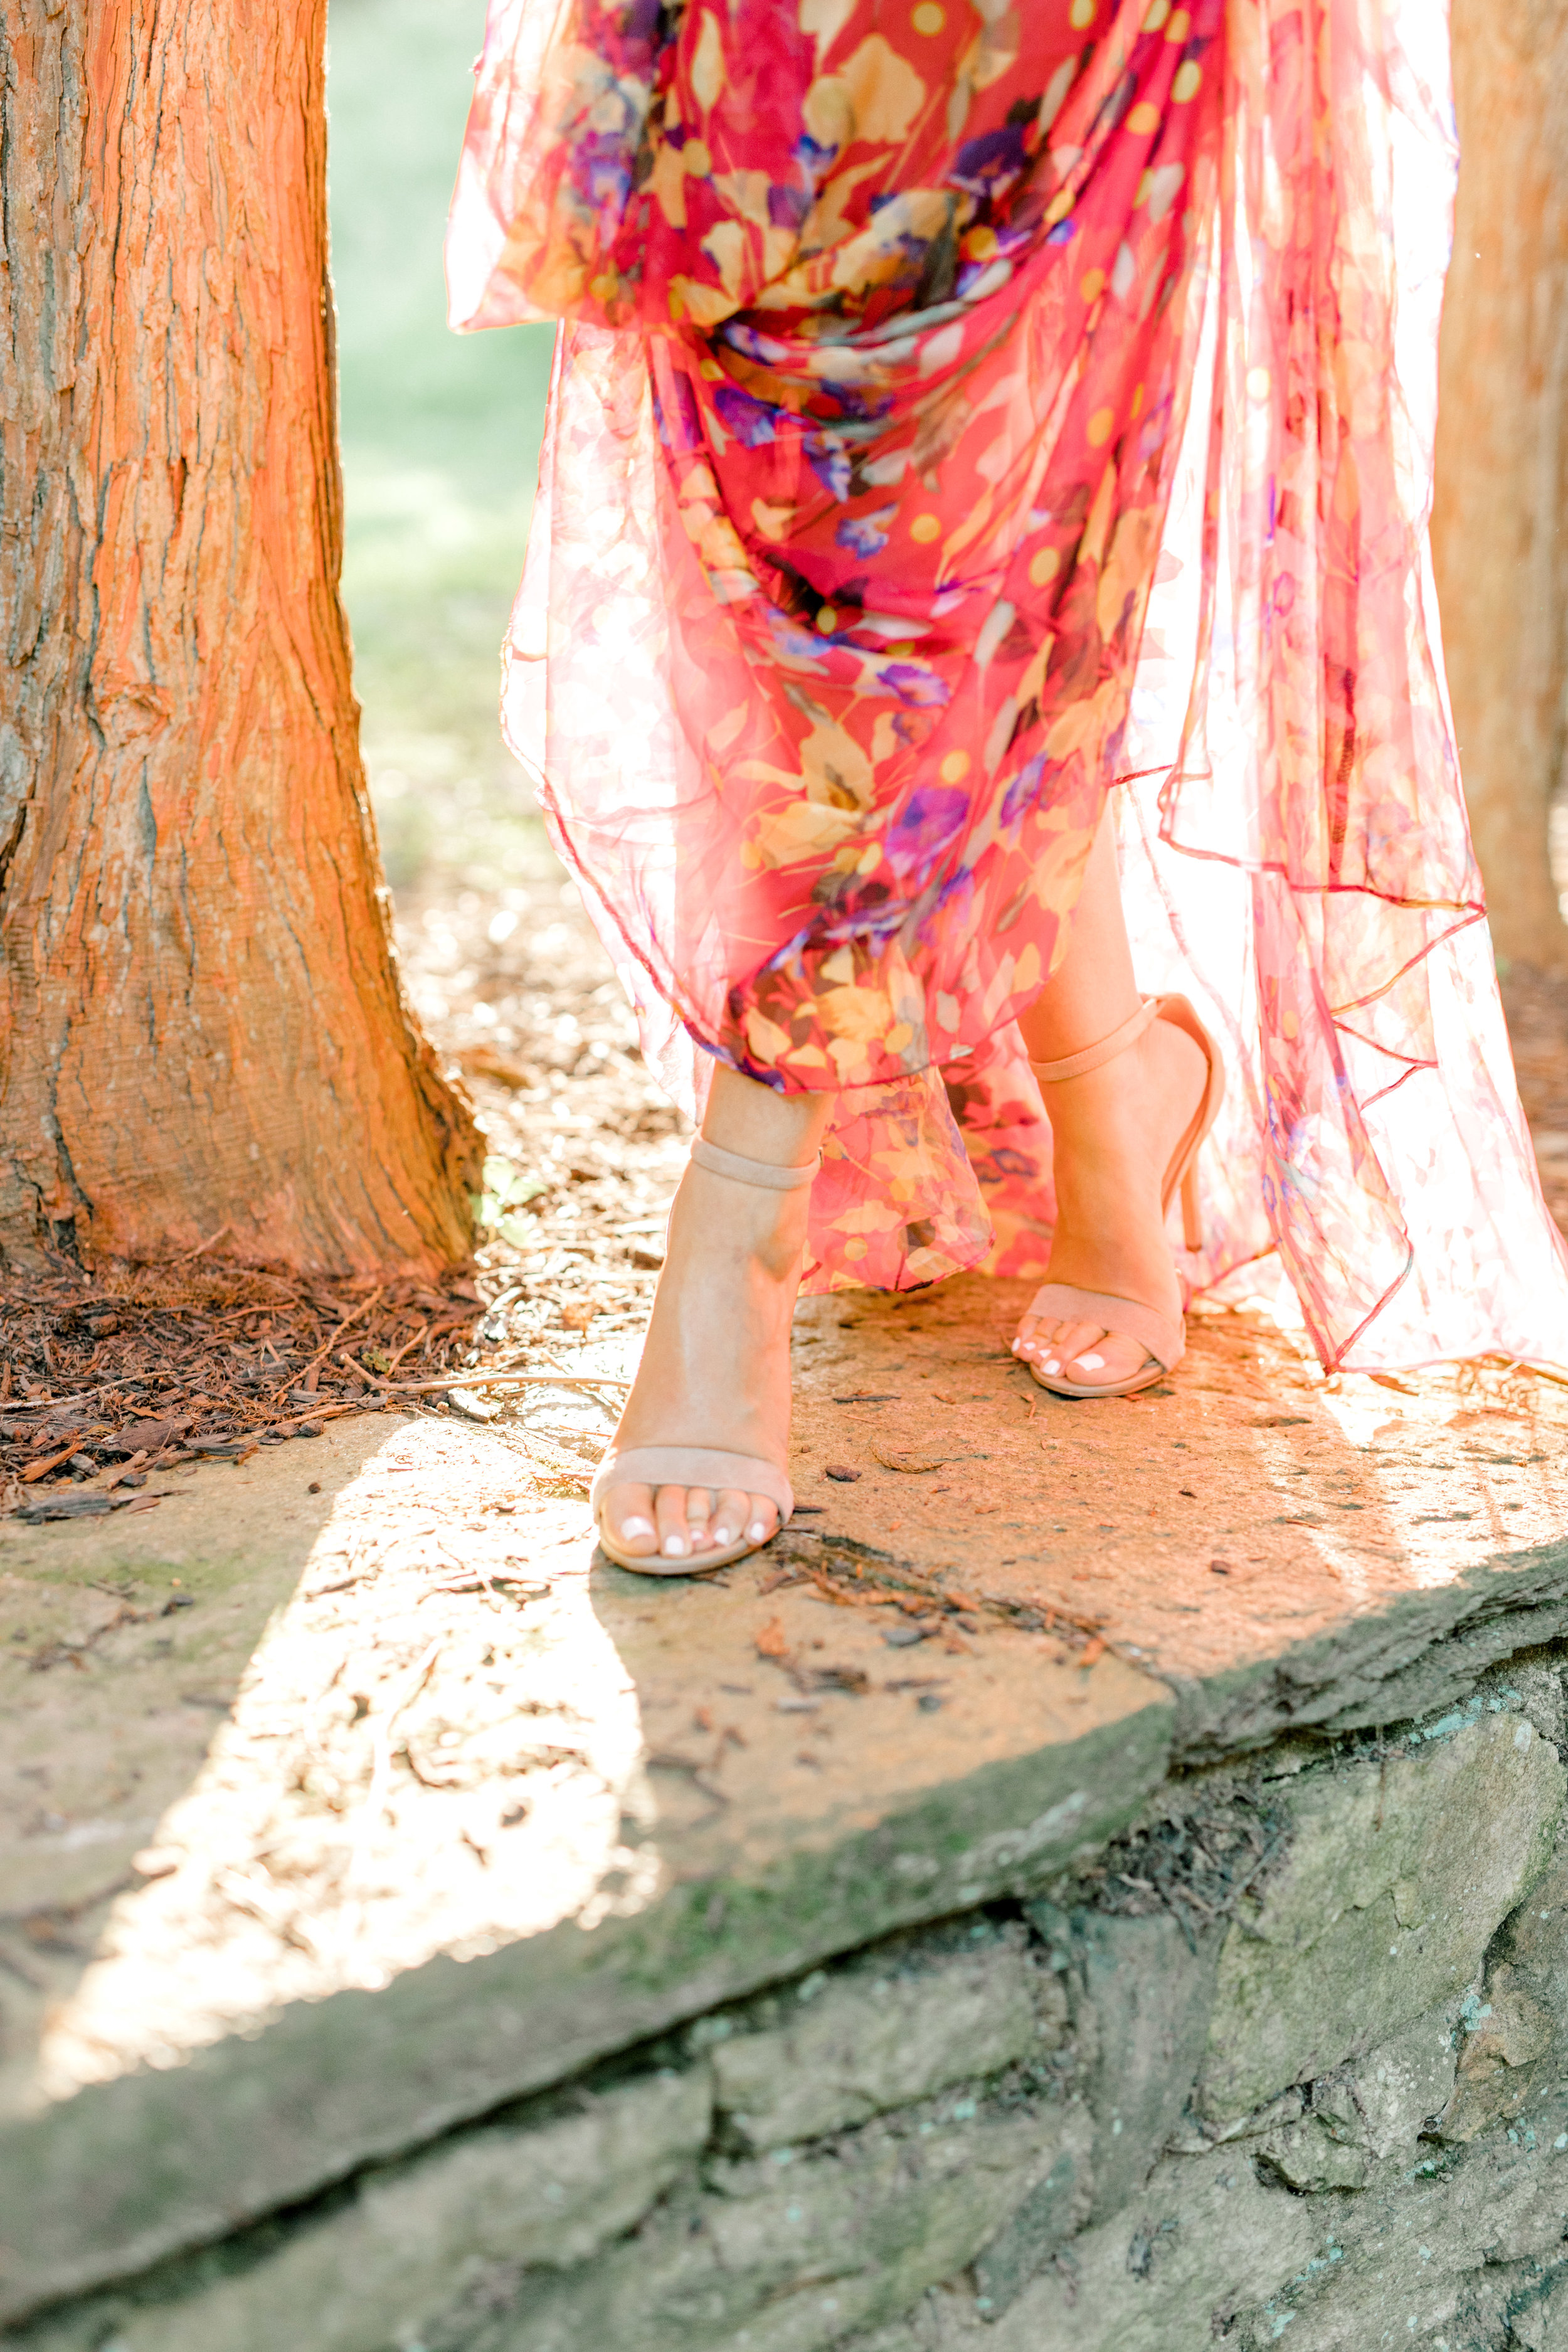 We absolutely adore the way the sun shines through this sheer red dress paired with stylish nude heels for Liz and Bill's romantic sunset woodland engagement session at Parque at Ridley Creek